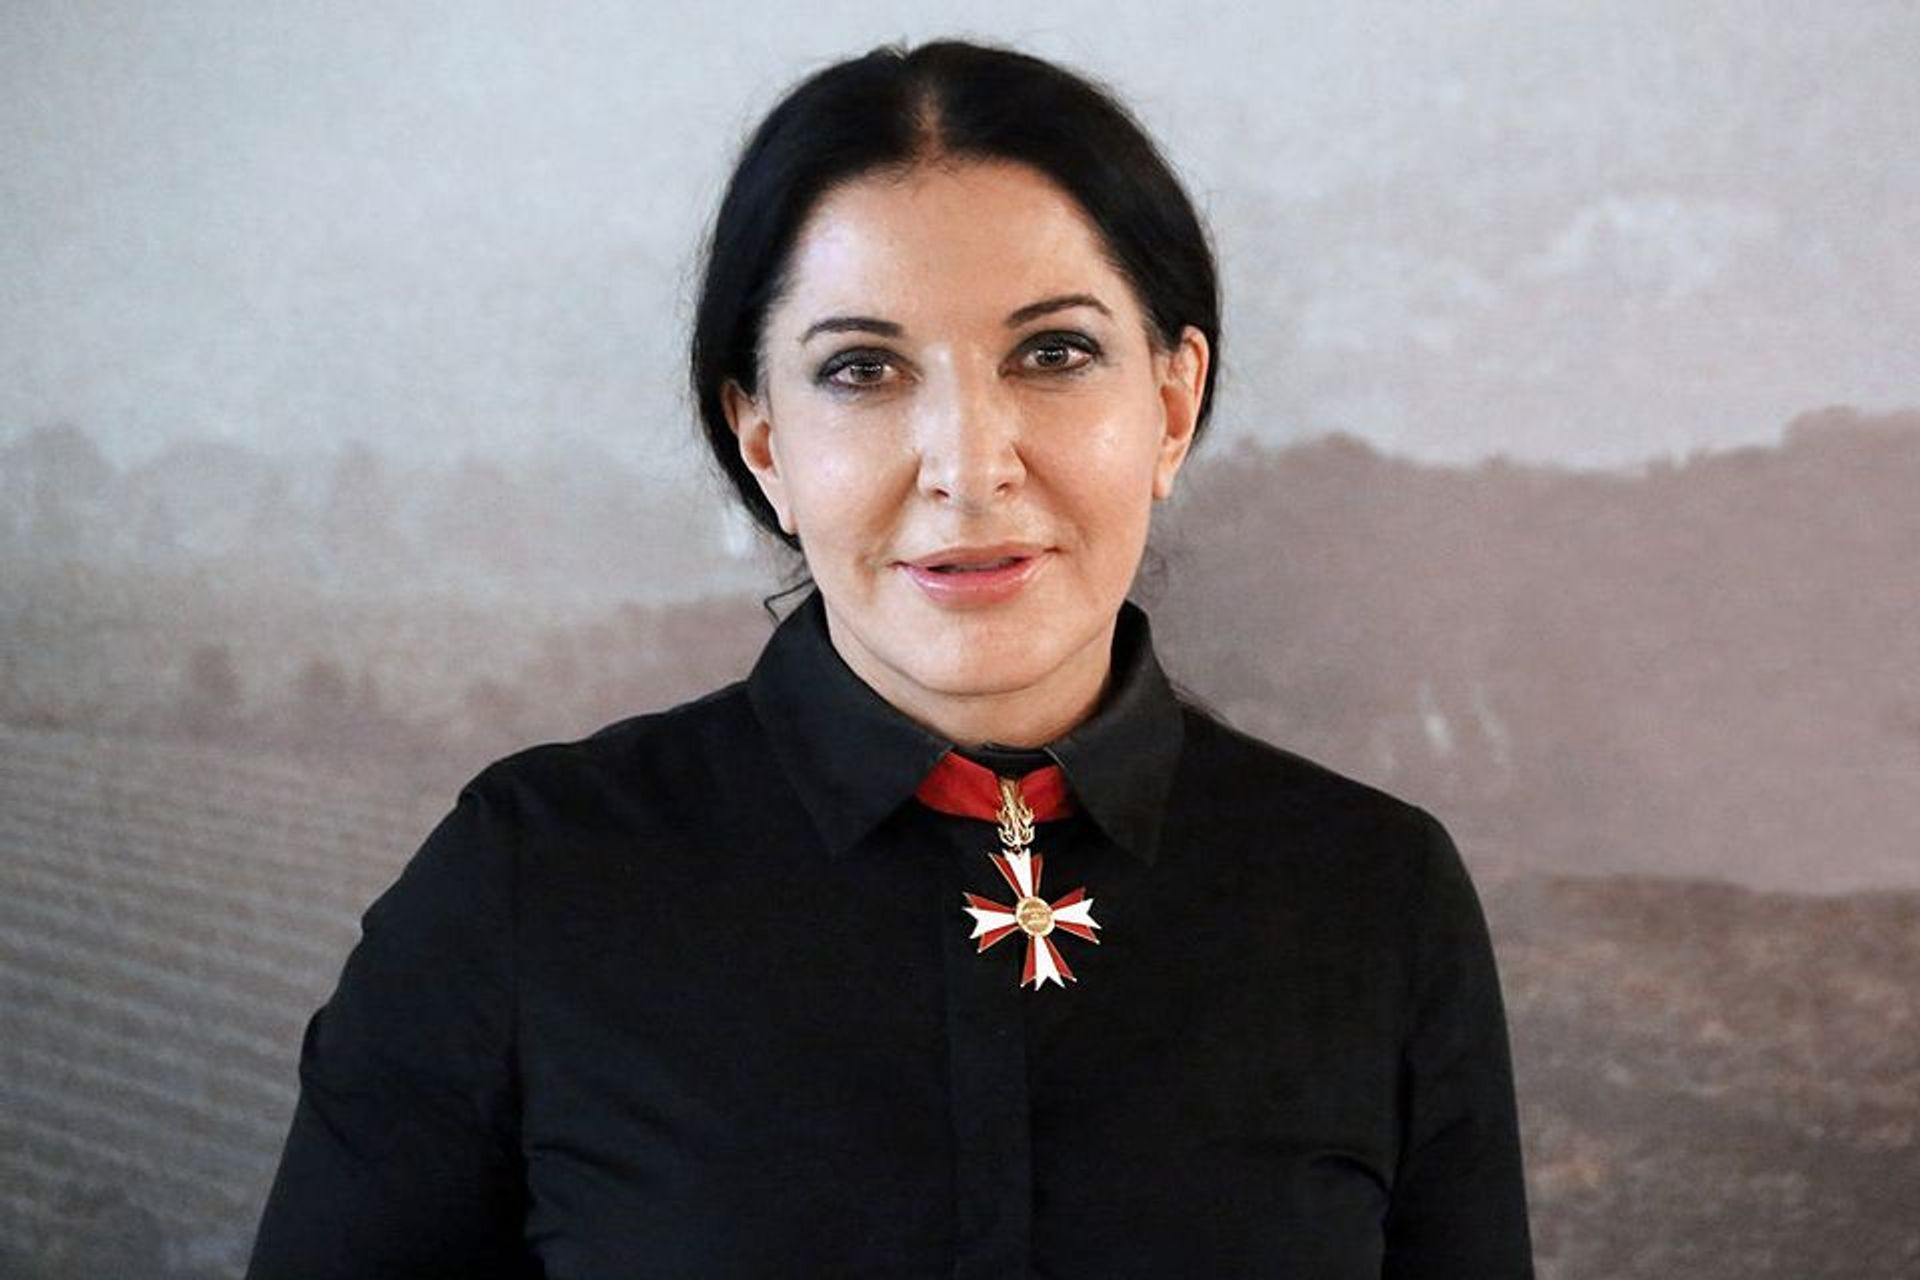 Marina Abramovic was not injured at the event © Manfred Werner/Tsui